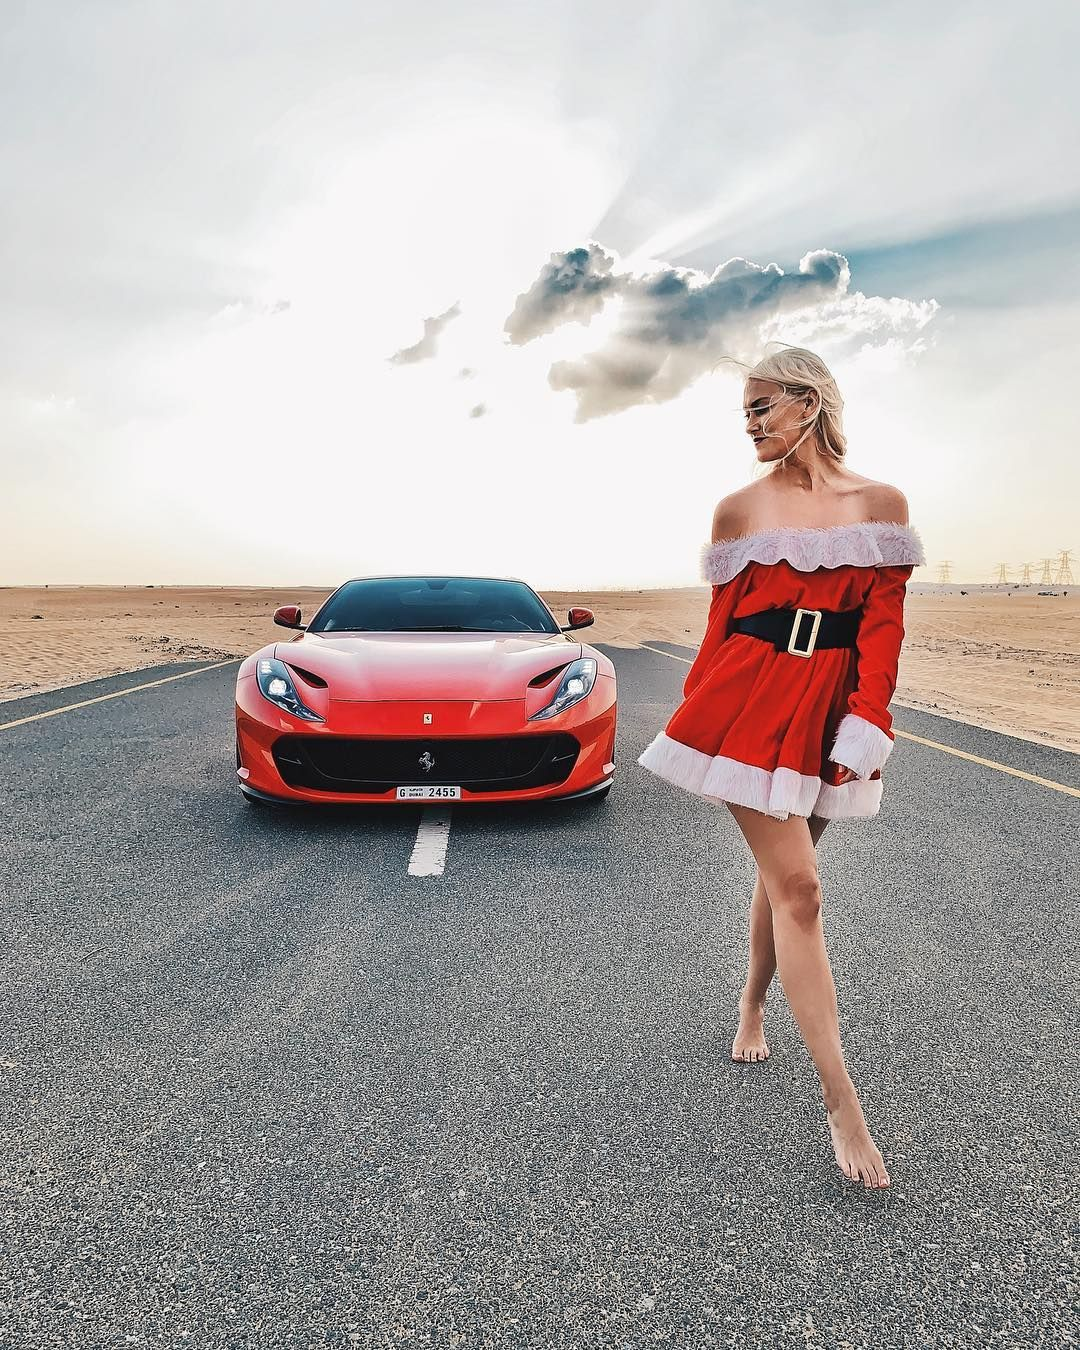 10 Days To Go What Are Your Christmas Wishes Ferrari 812 812superfast Christmas Superiorrental Car Girls Super Cars Trucks And Girls